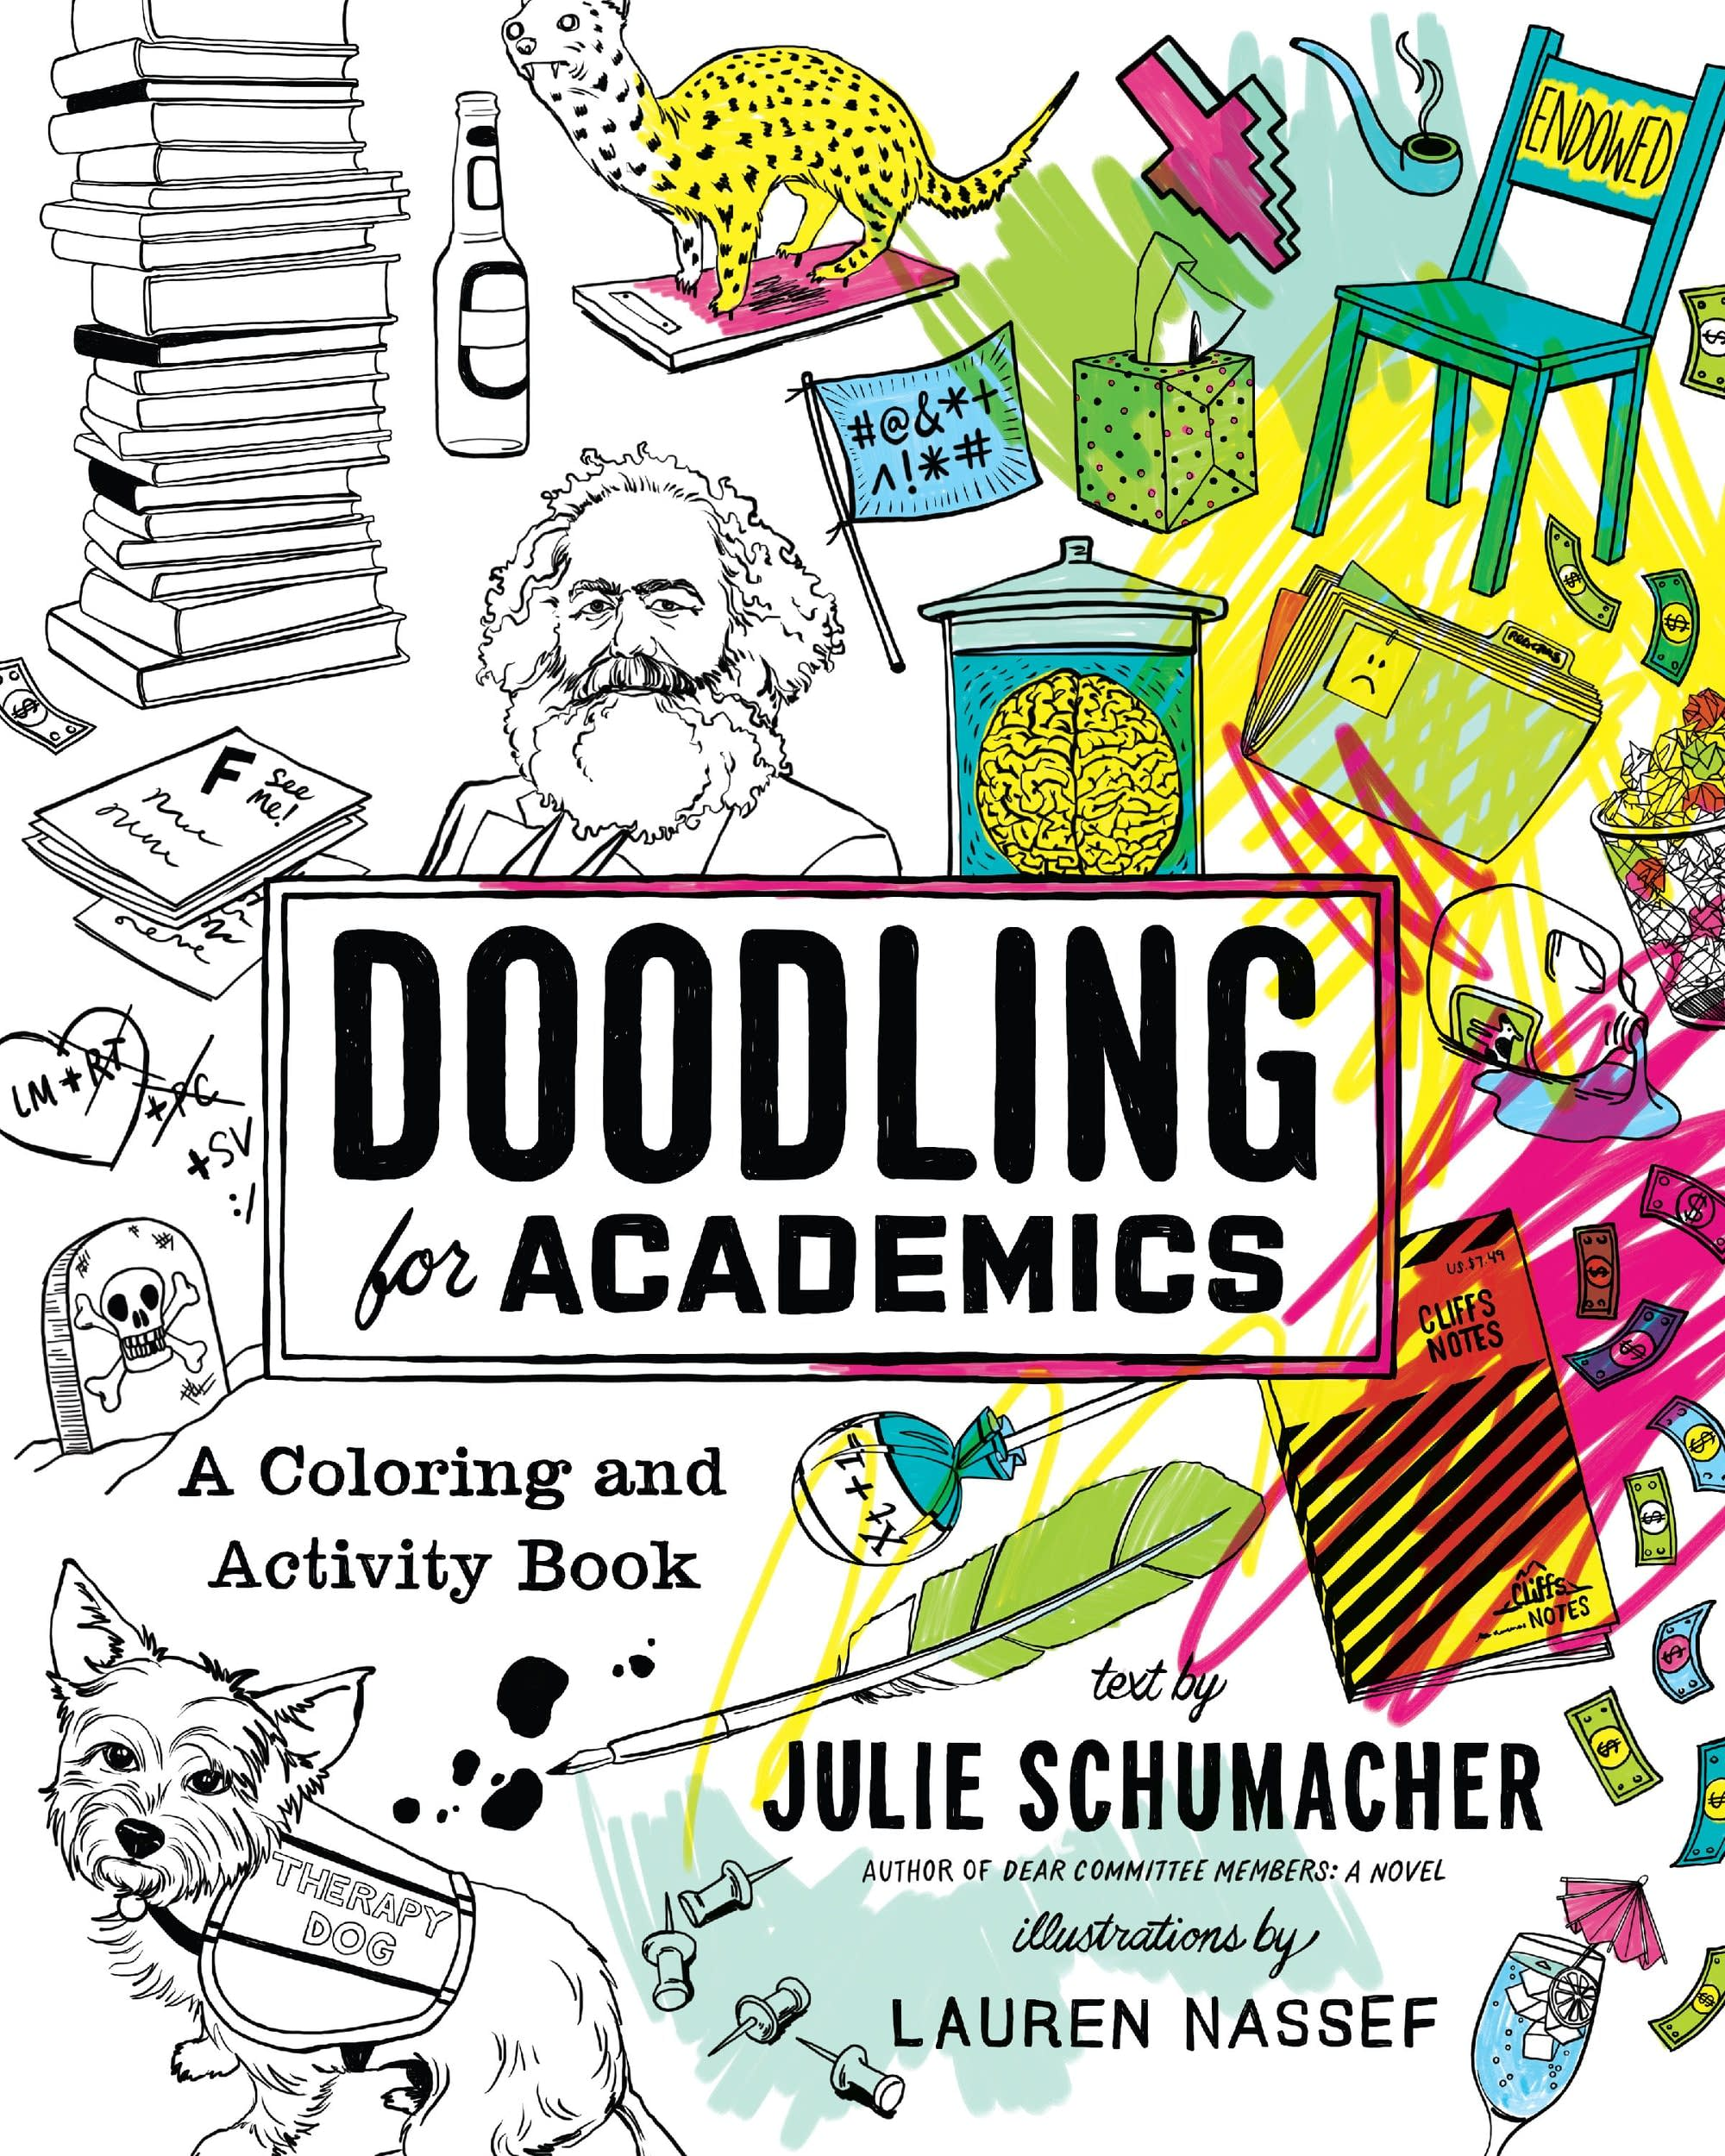 Doodling For Academics Book Cover